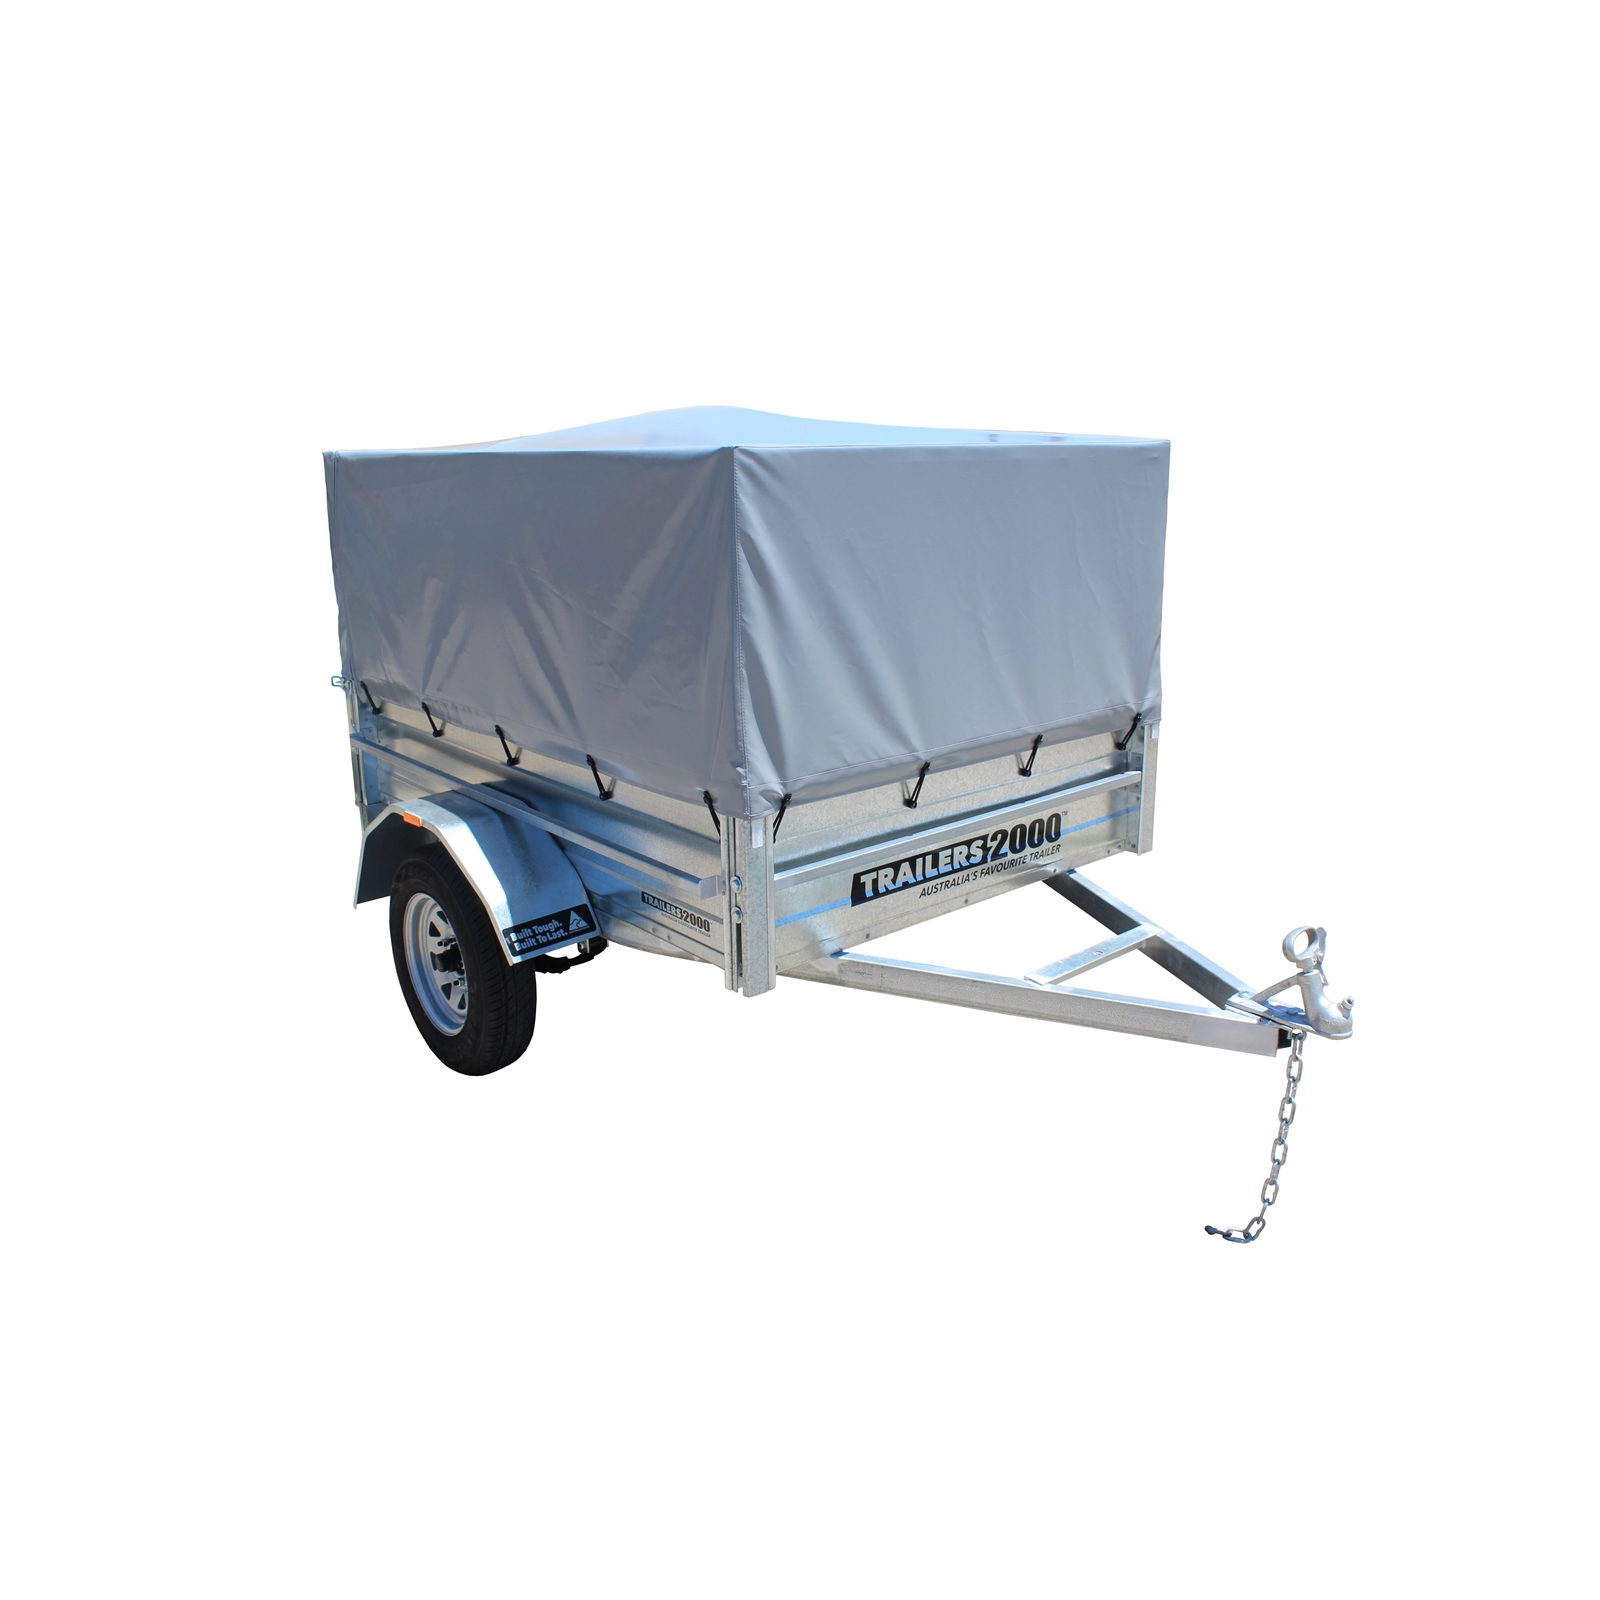 Trailers 2000 6 x 4ft Universal Cage Cover